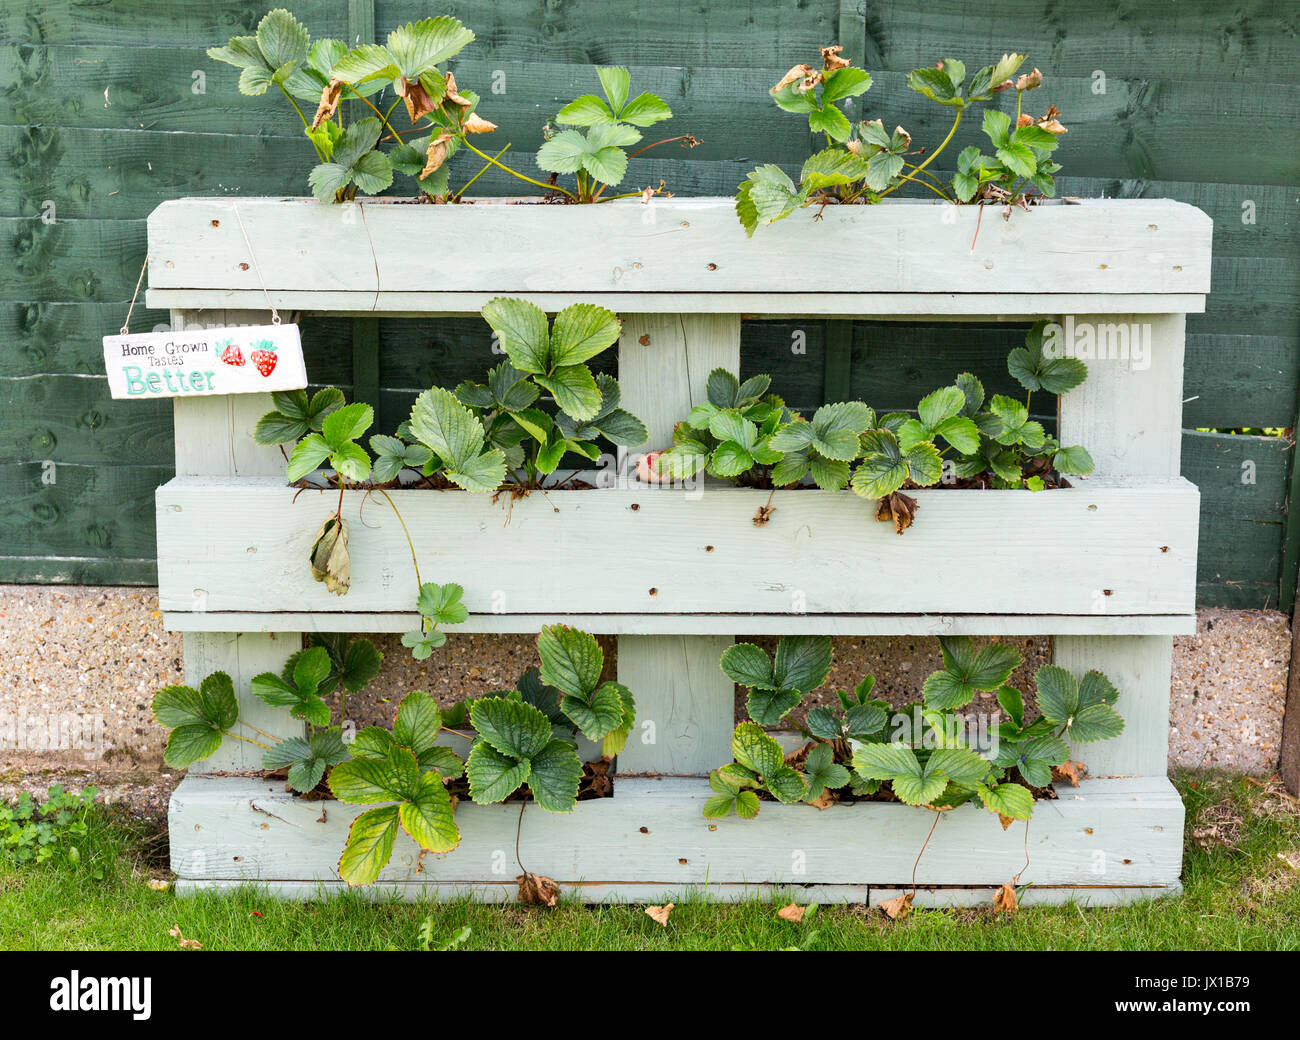 Strawberry Plants growing in a wooden planter made from an old wooden pallet - Stock Image